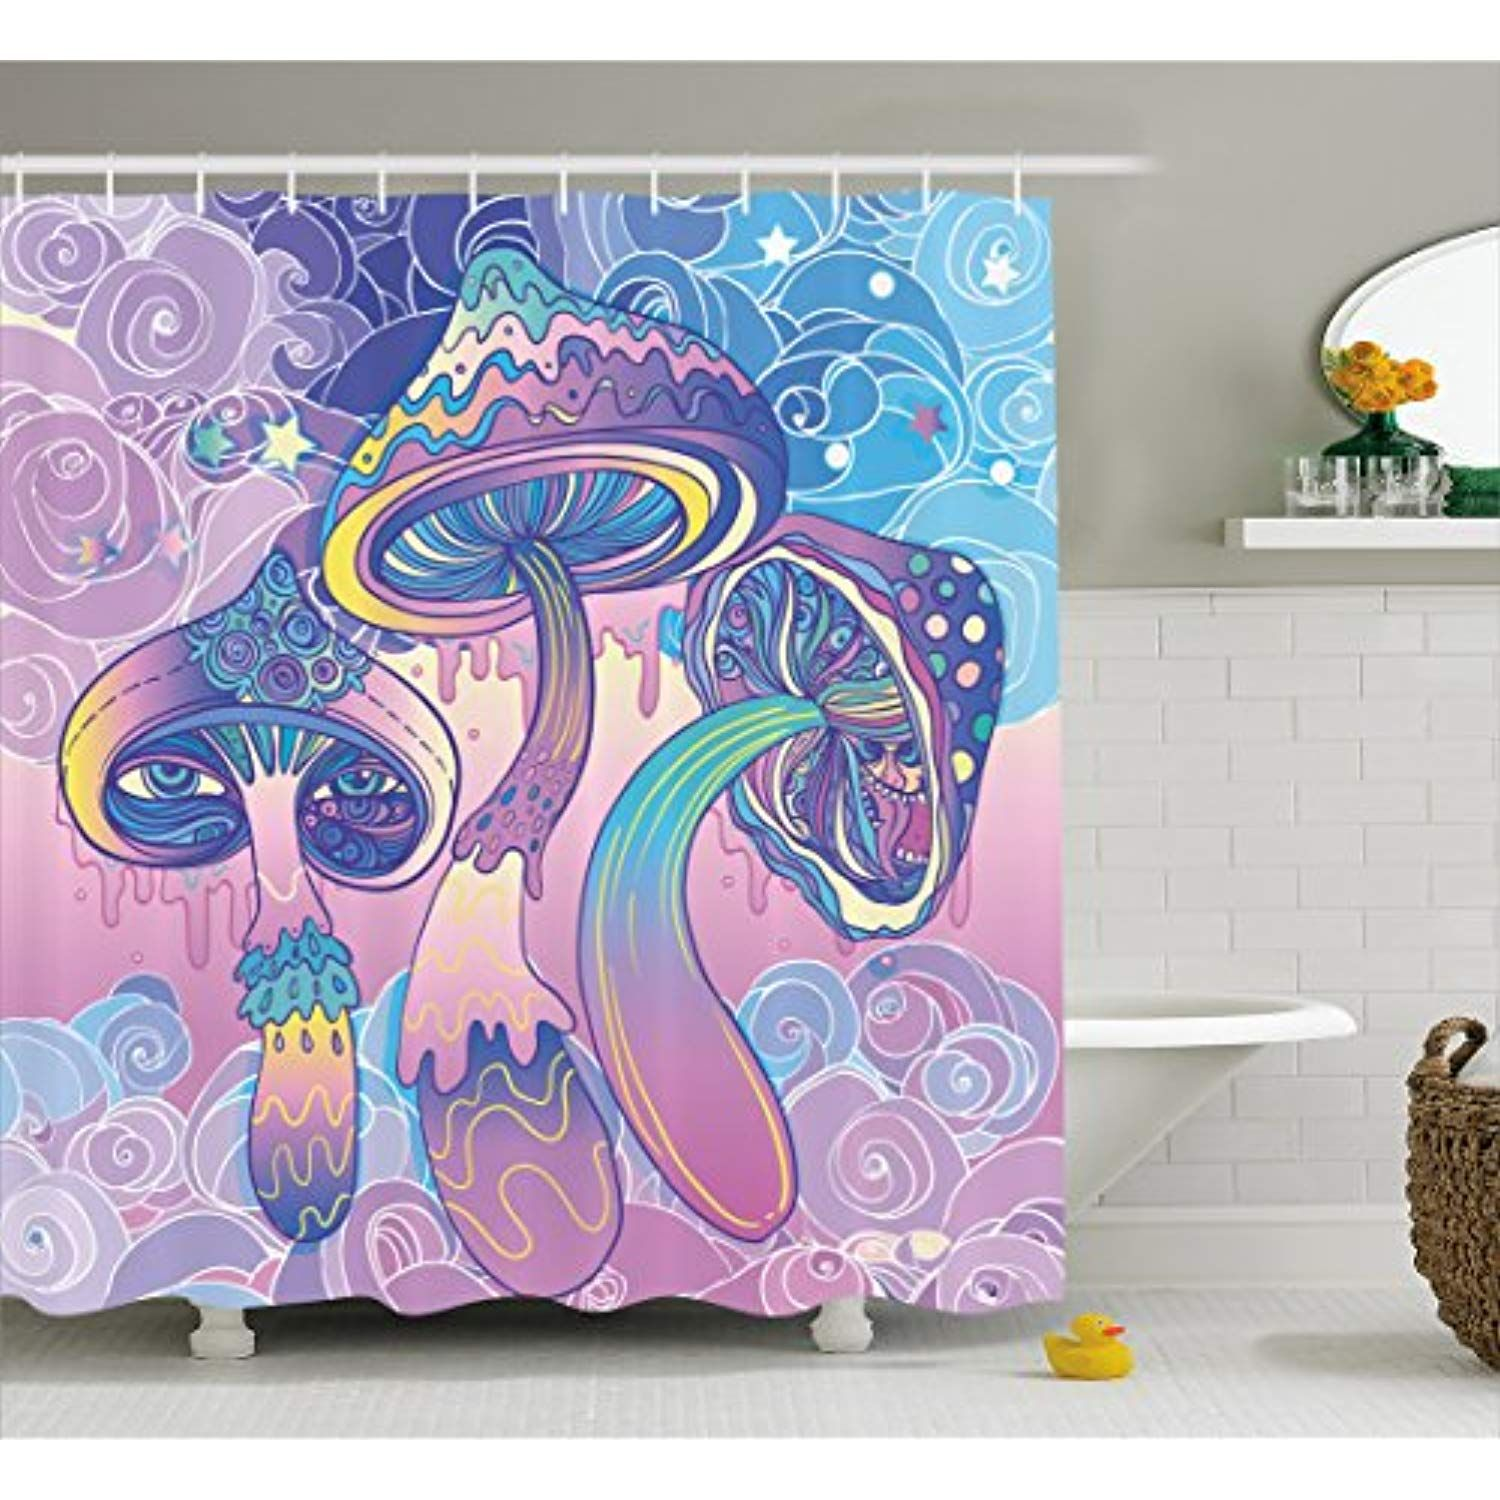 Ambesonne Mushroom Shower Curtain By Trippy Drawing Hippie Decor Sixties Visionary Psychedelic Shamanic Fabric Bathroom Decor Set With Hooks Bathroom Decor Sets Trippy Drawings Psychedelic